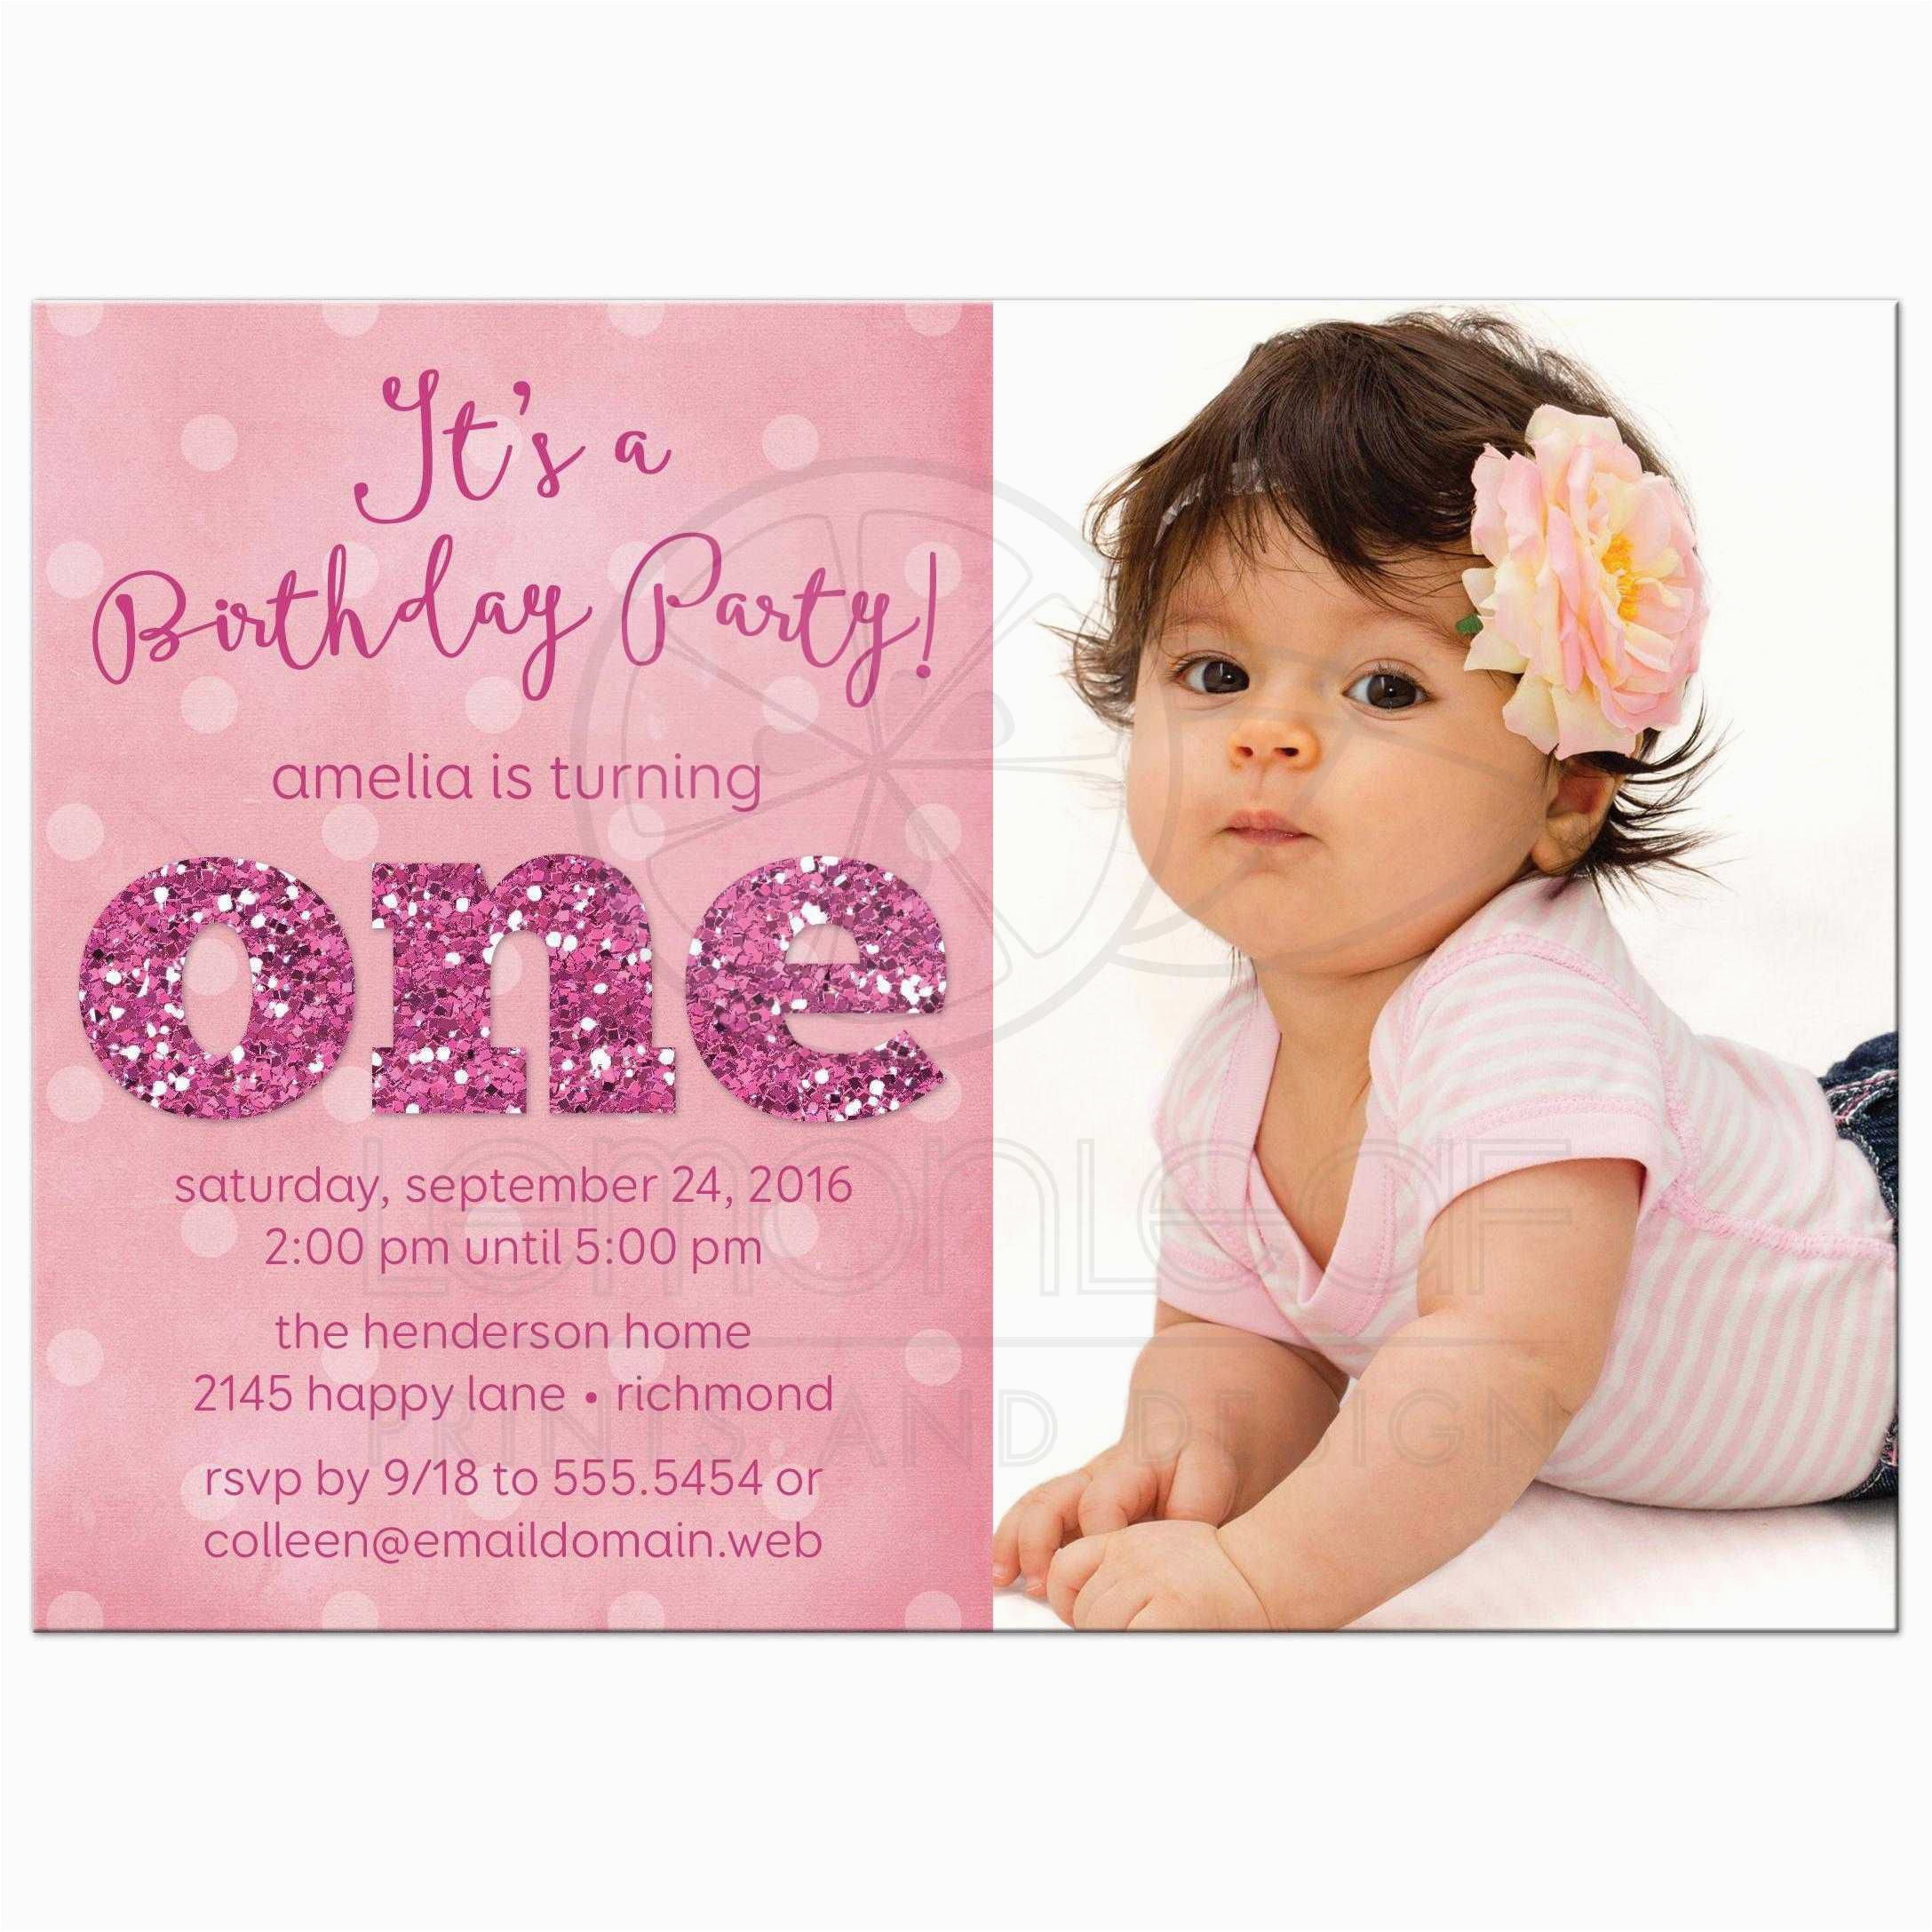 First Birthday and Baptism Invitation Wording 1st Birthday and Baptism Invitations 1st Birthday and